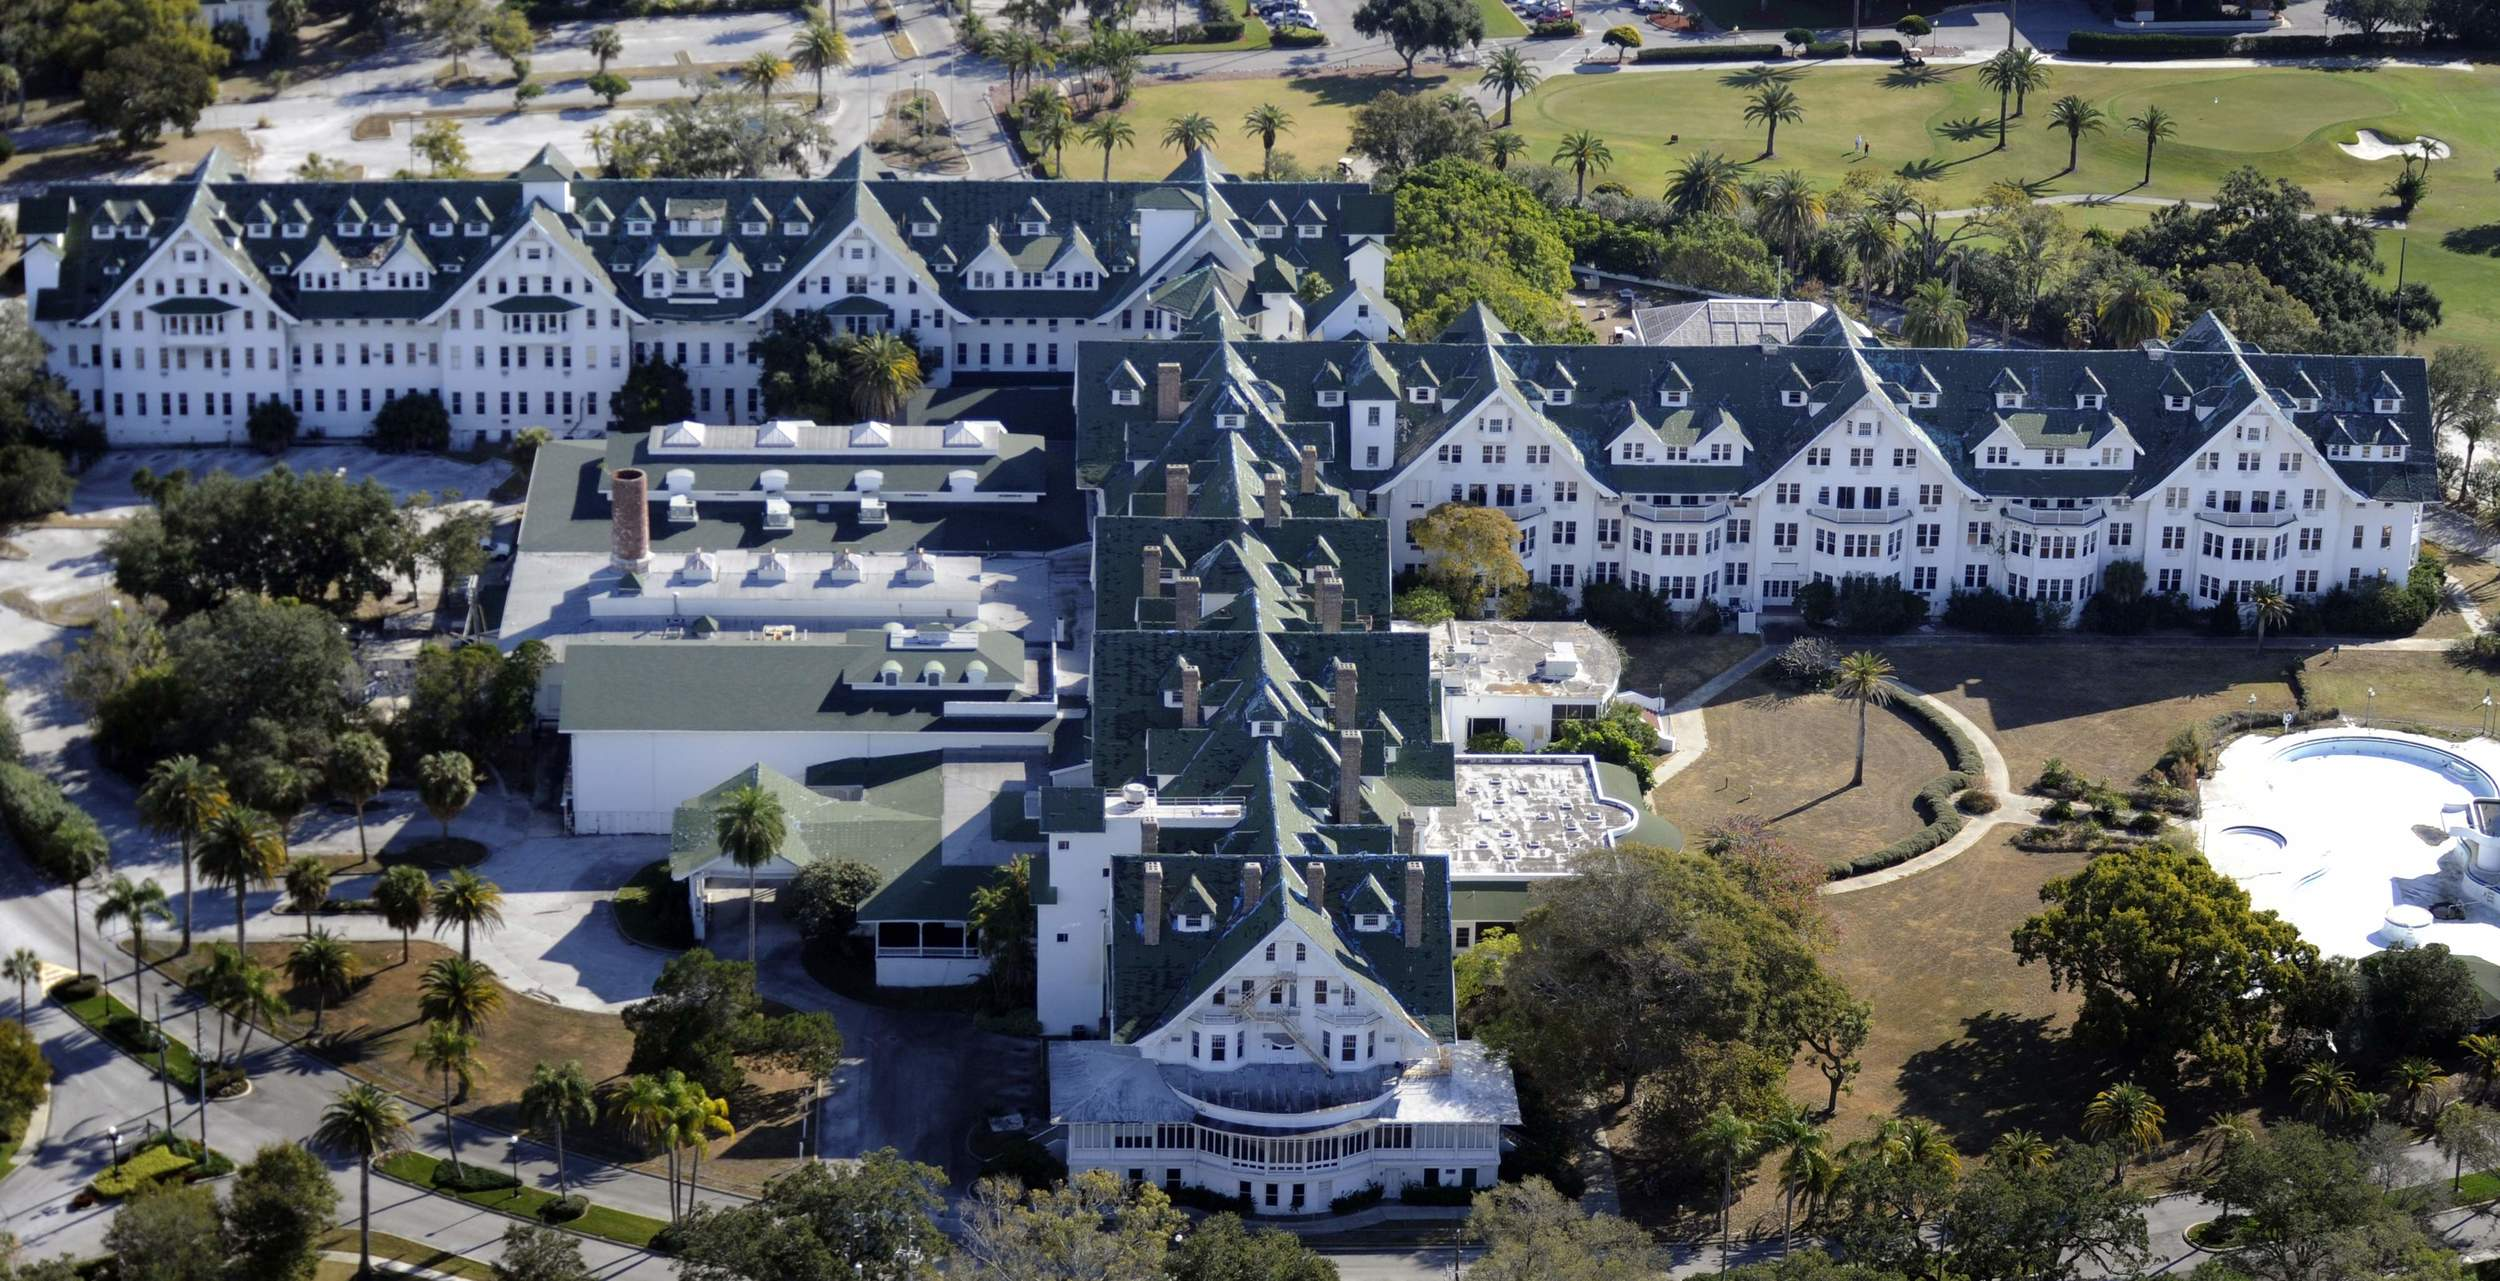 Aerial view of the Belleview-Biltmore taken after it was closed in 2009.